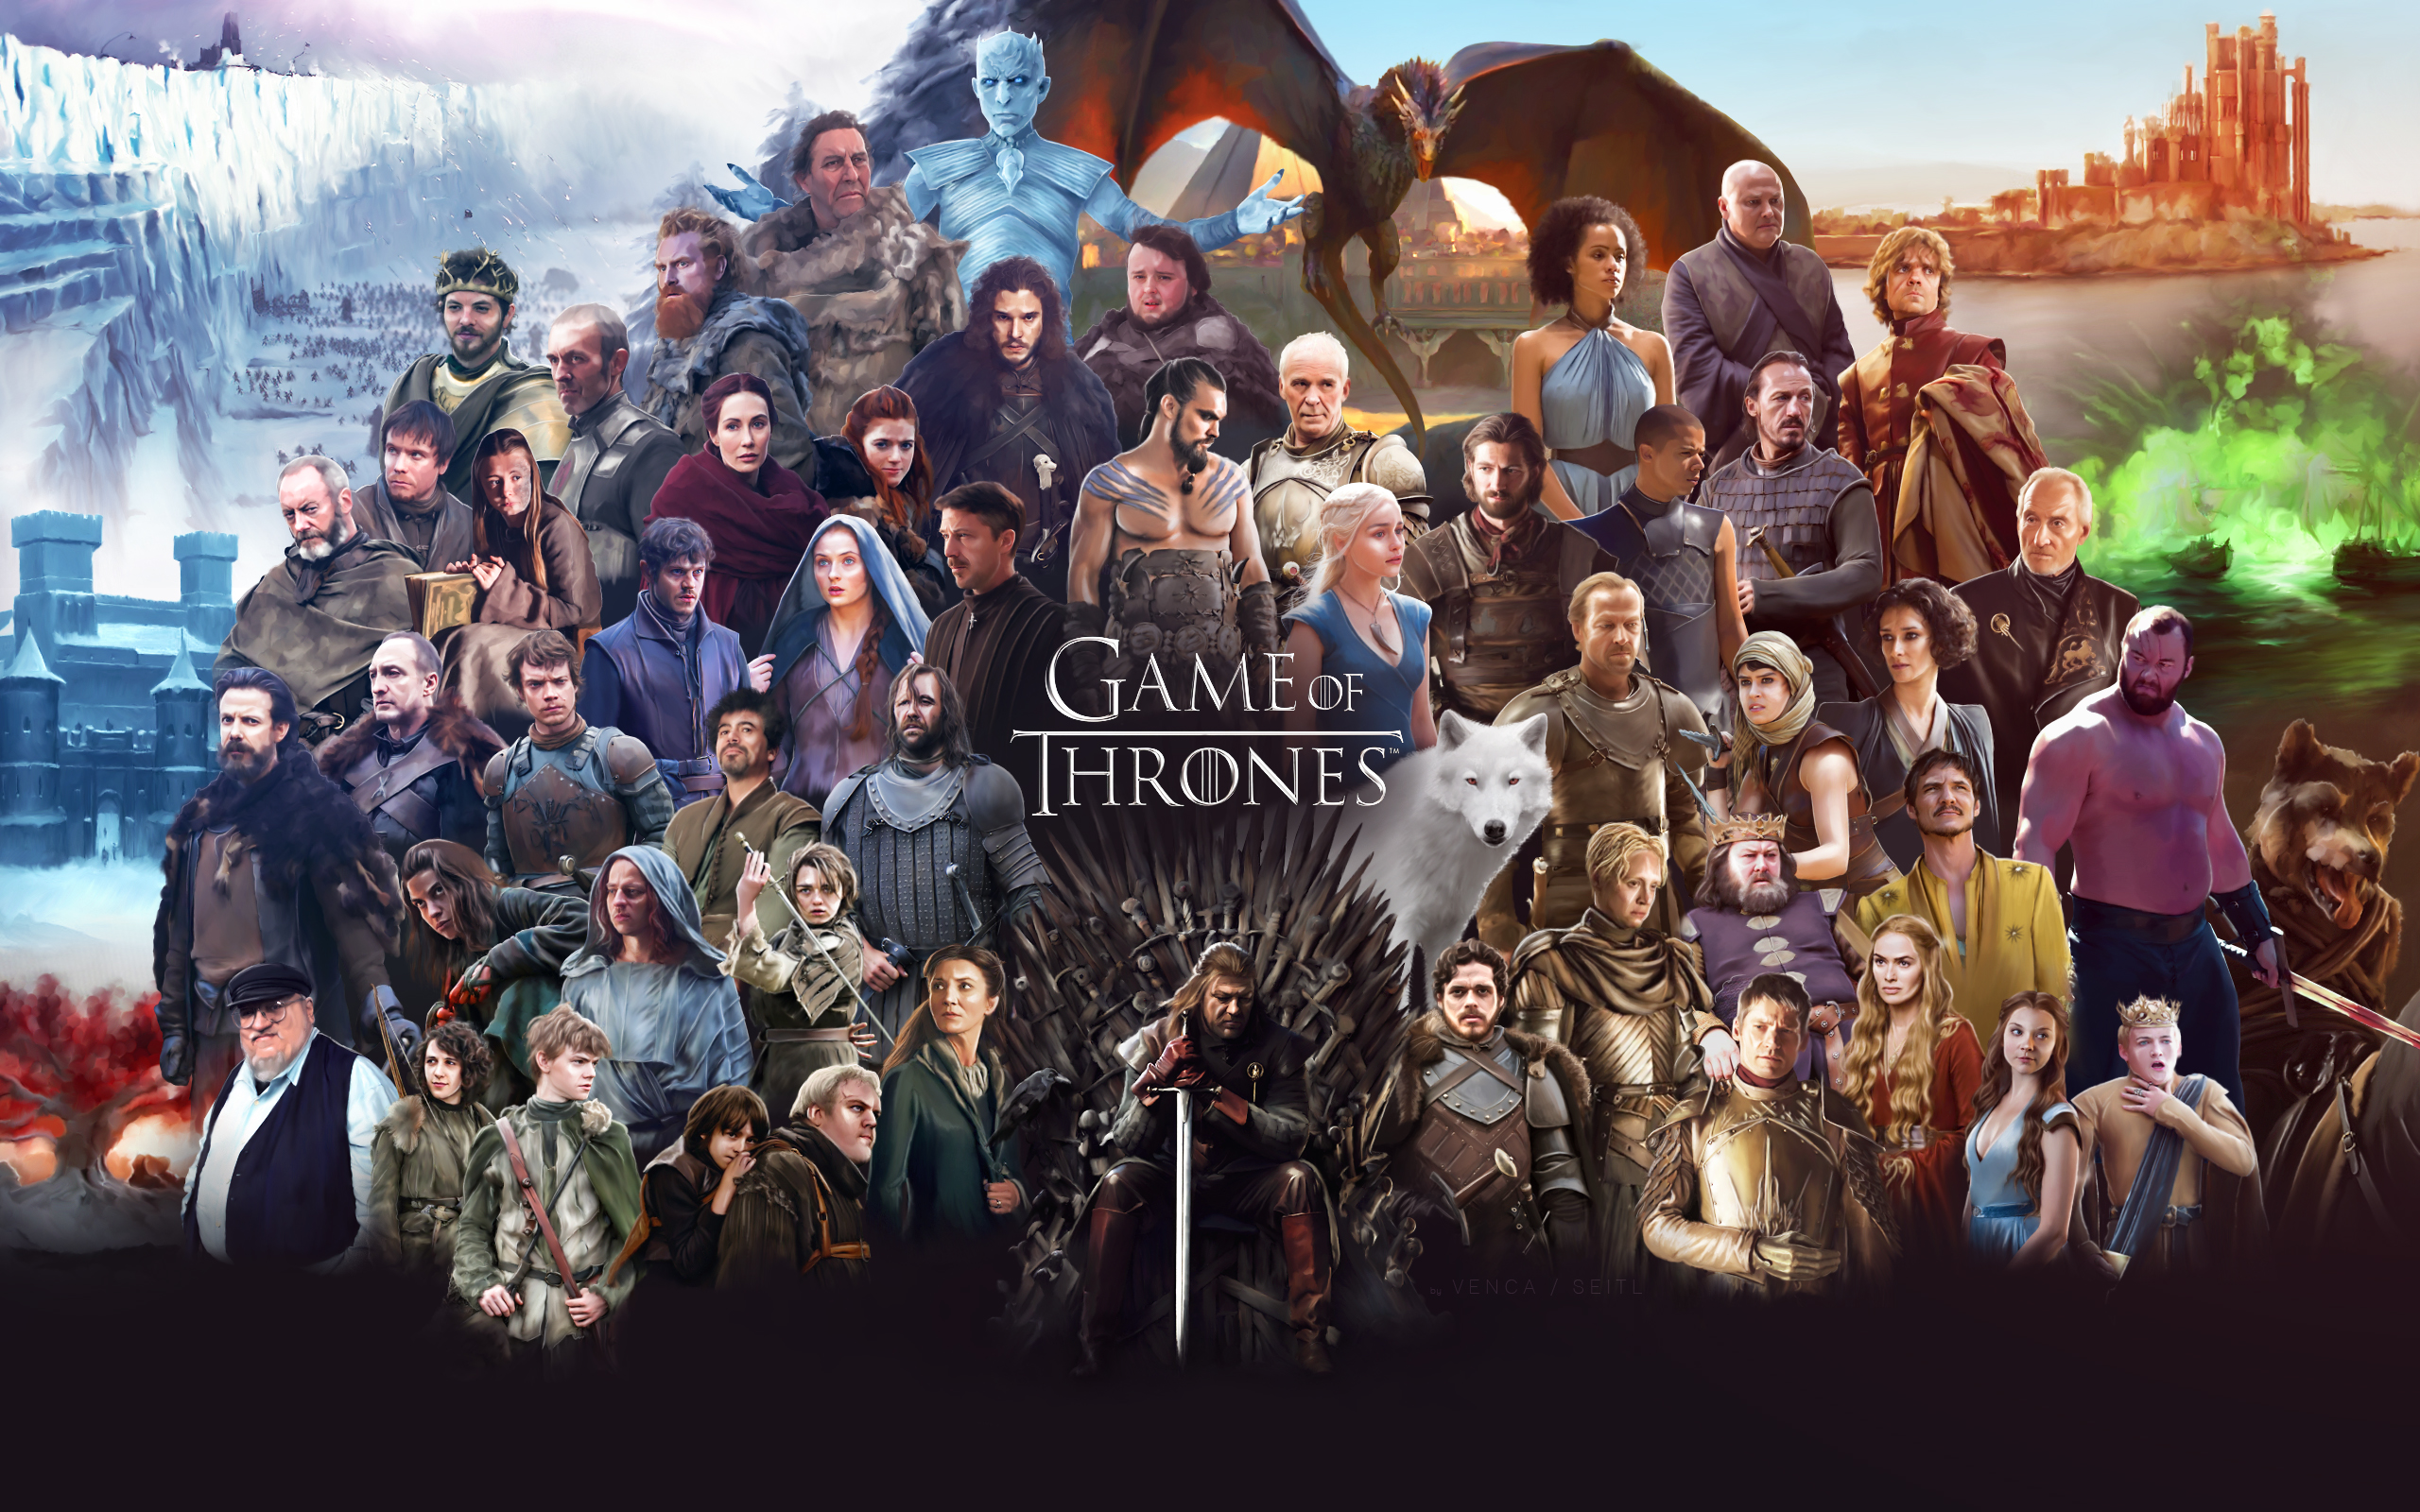 320x240 Game Of Thrones All Cast Apple Iphoneipod Touchgalaxy Ace